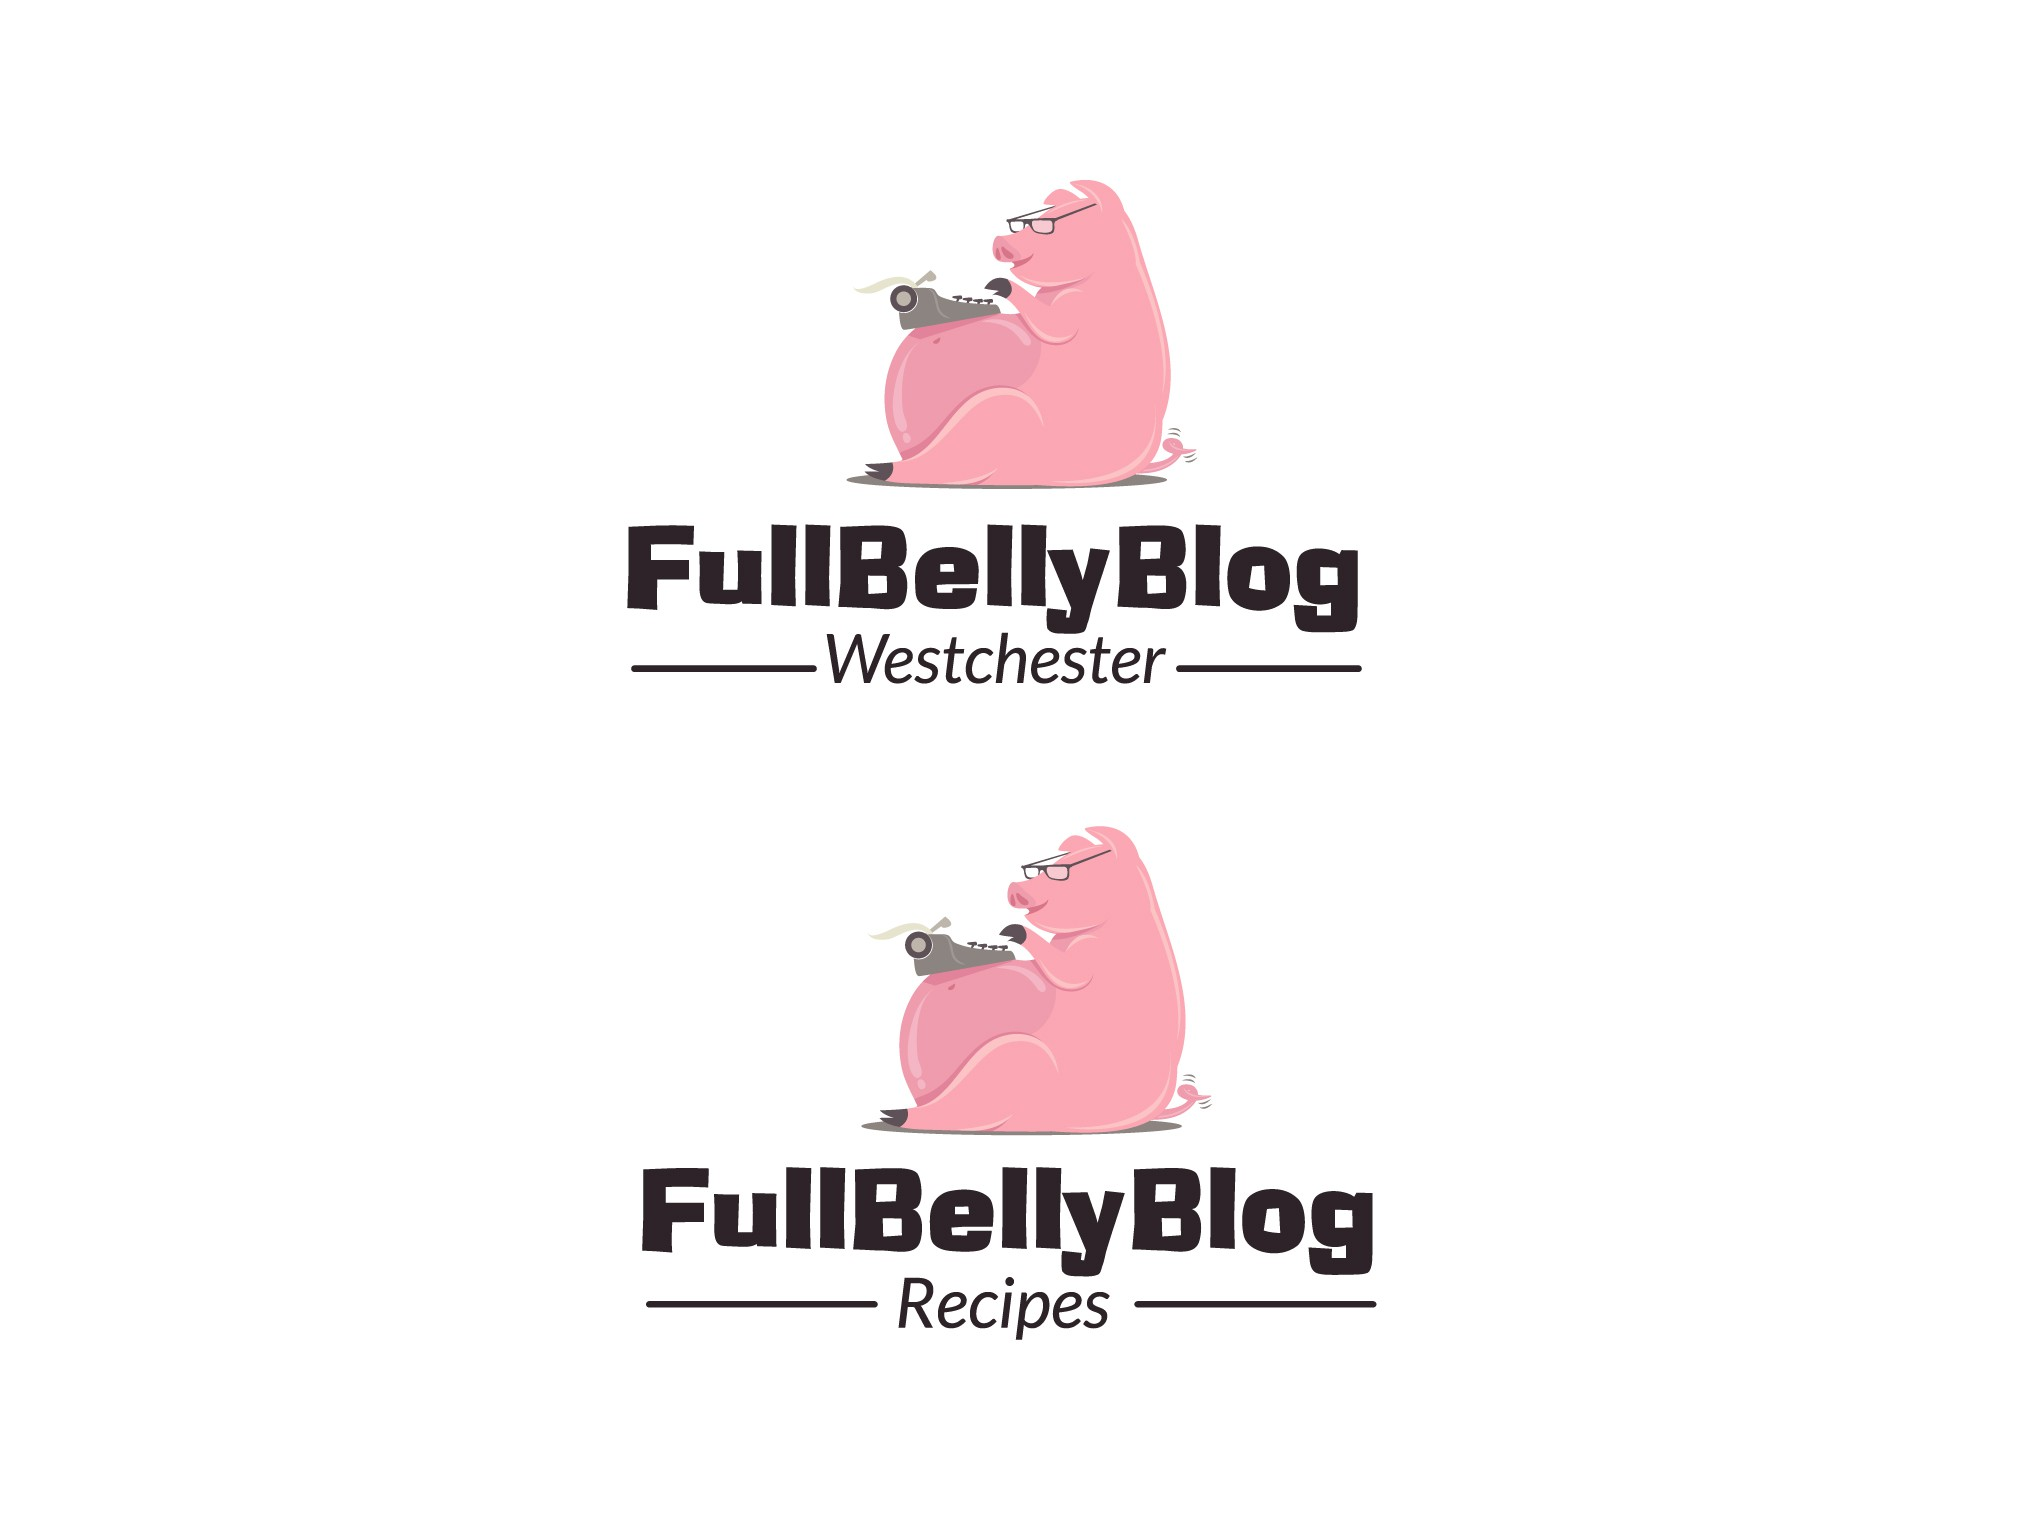 Create a Westchester County food blog for FullBellyBlog Westchester